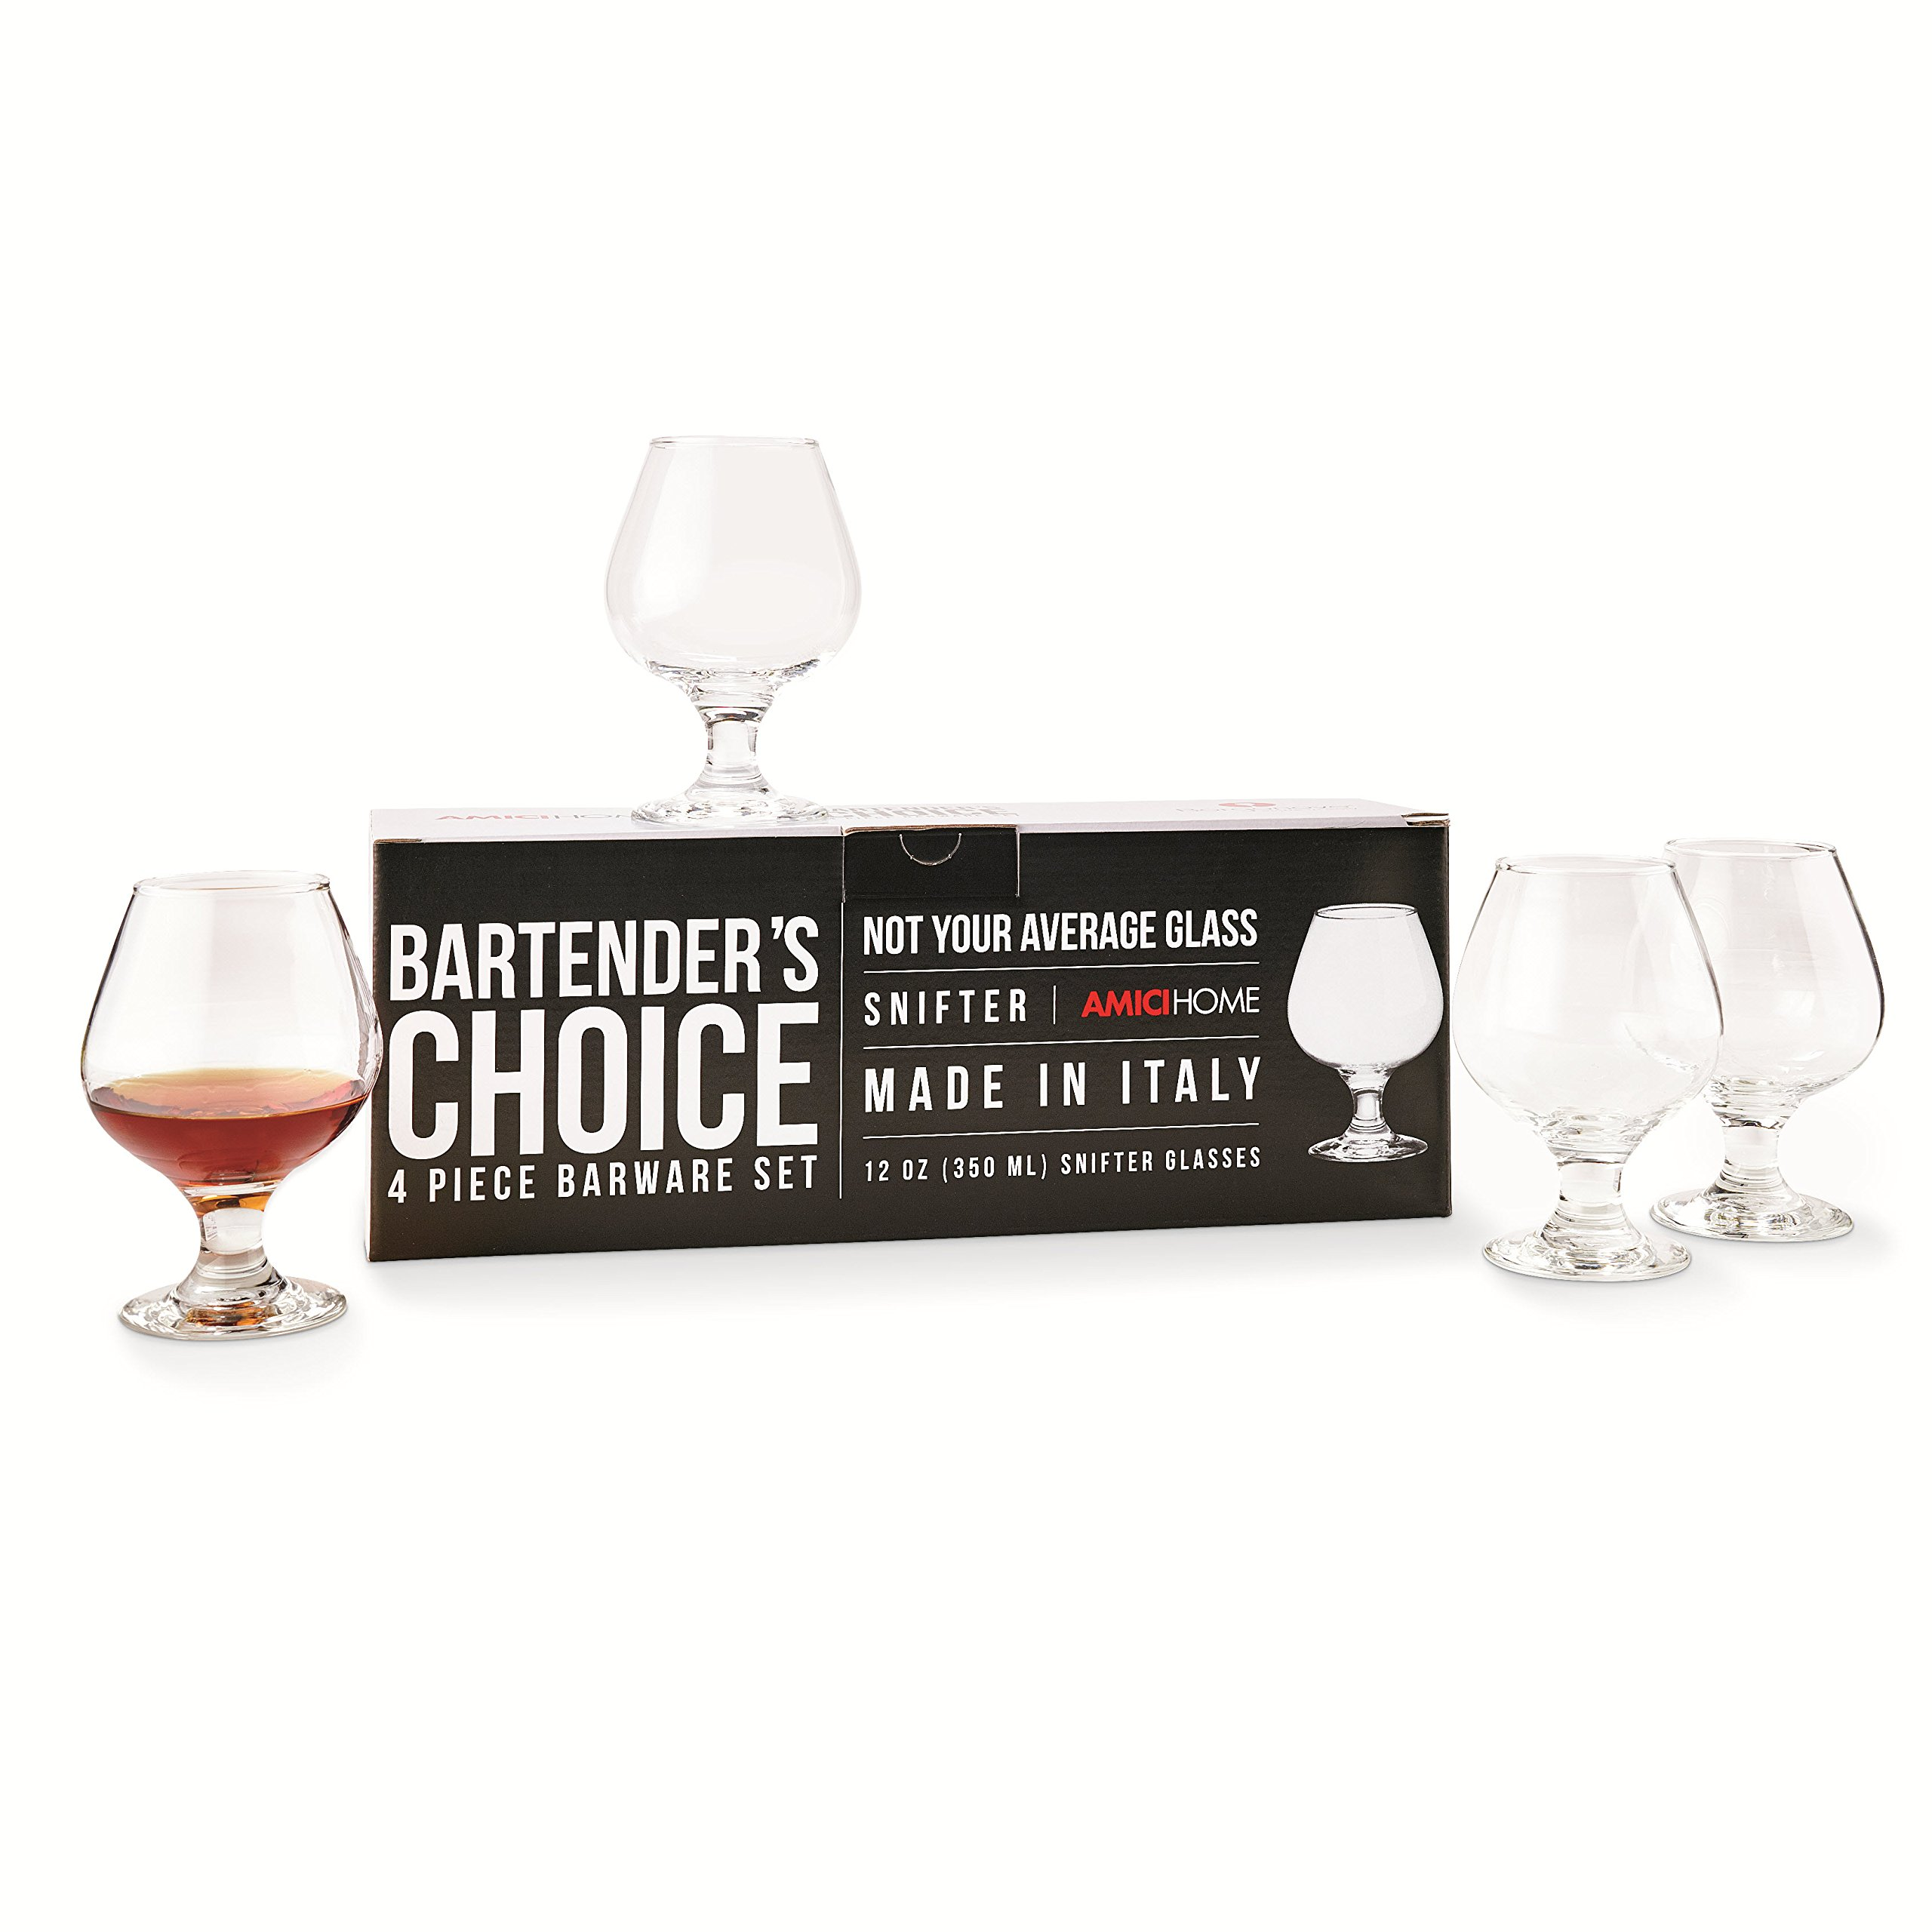 Amici Bartender's Choice Footed Snifter Glass, 12 oz. - Set of 4